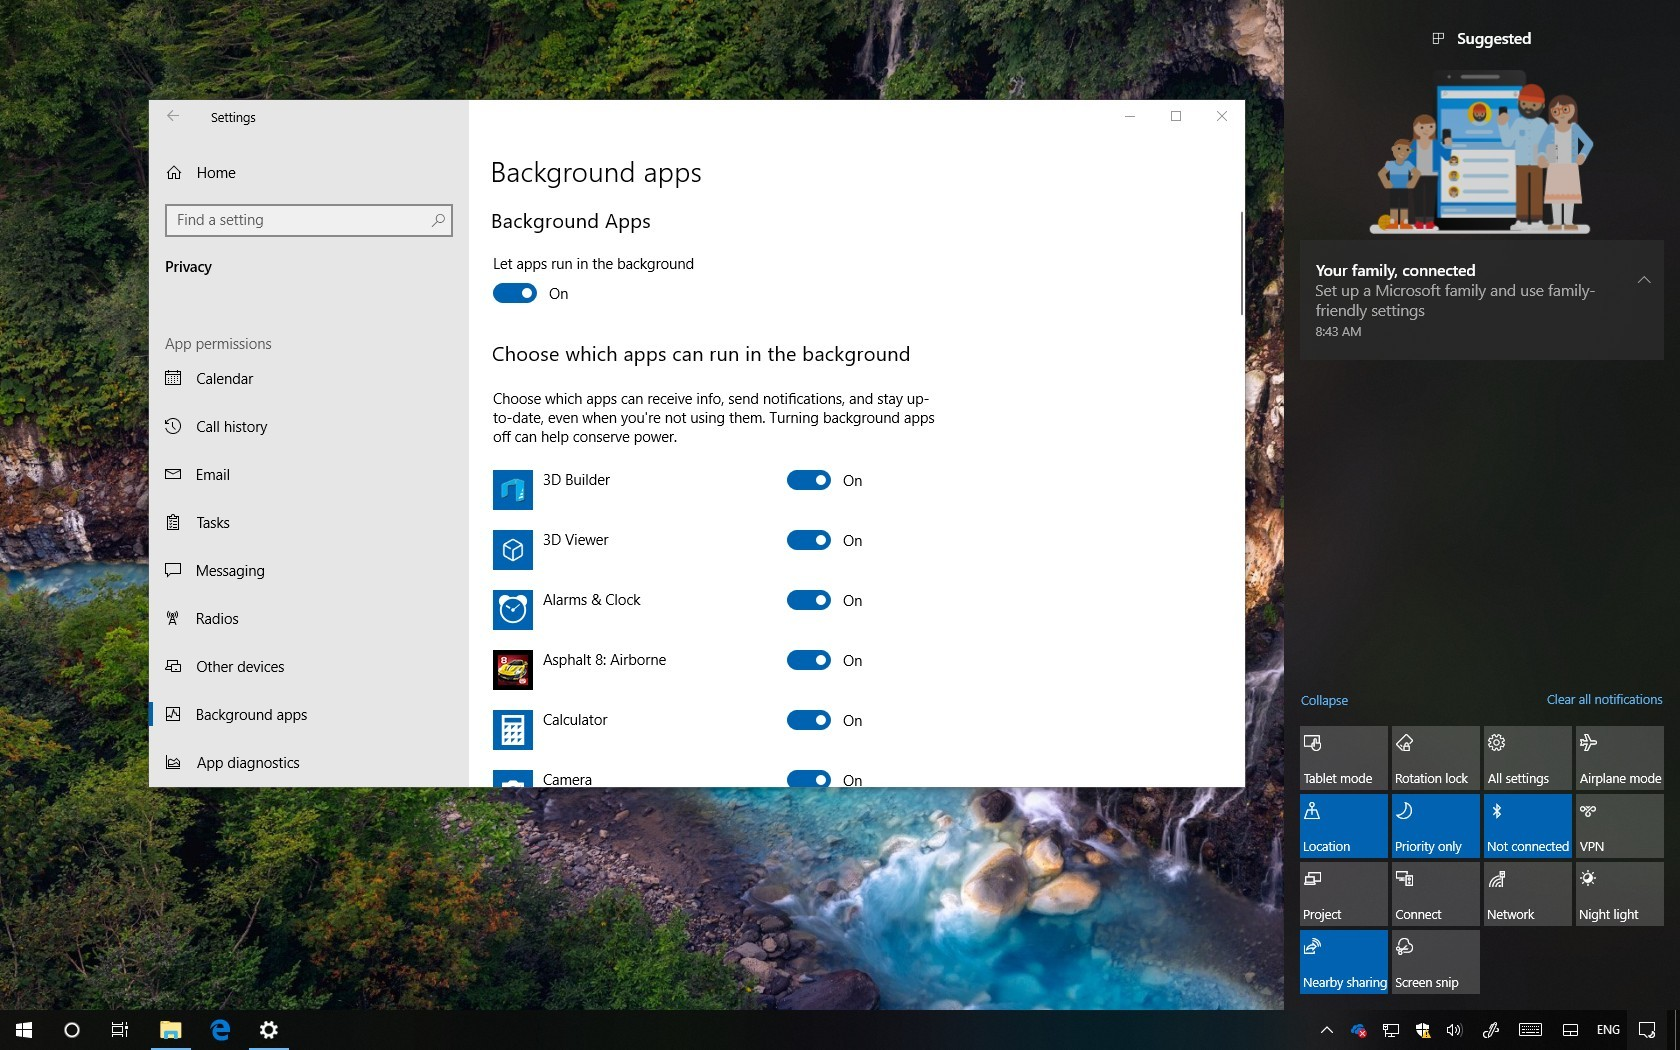 Windows 10 Action Center and Background apps settings